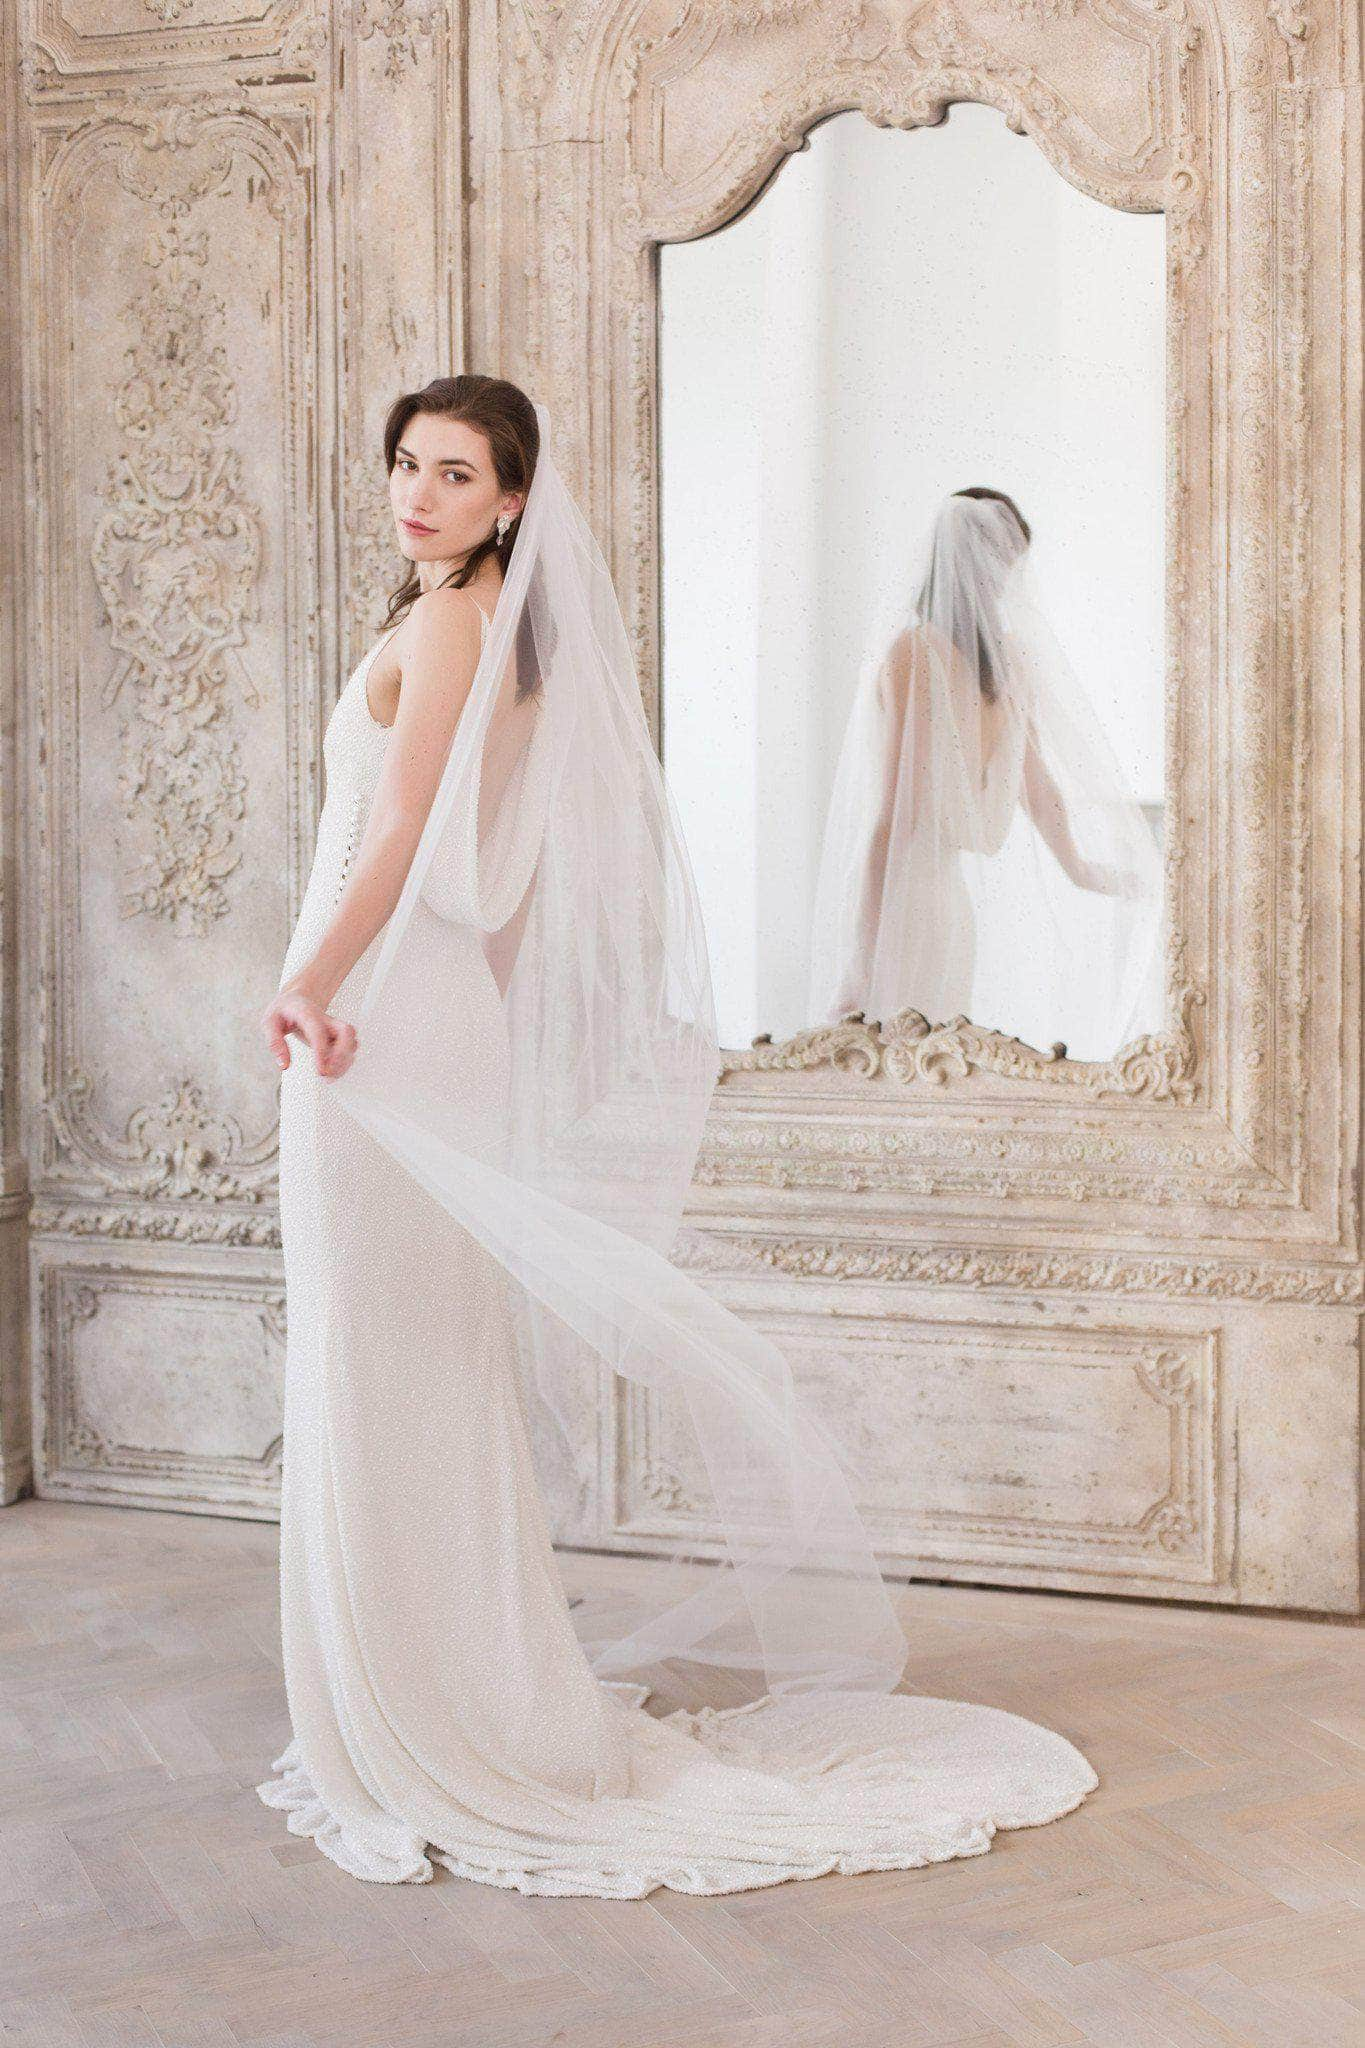 Wedding Veil Single tier cut edge wedding veil - 'Niacae'